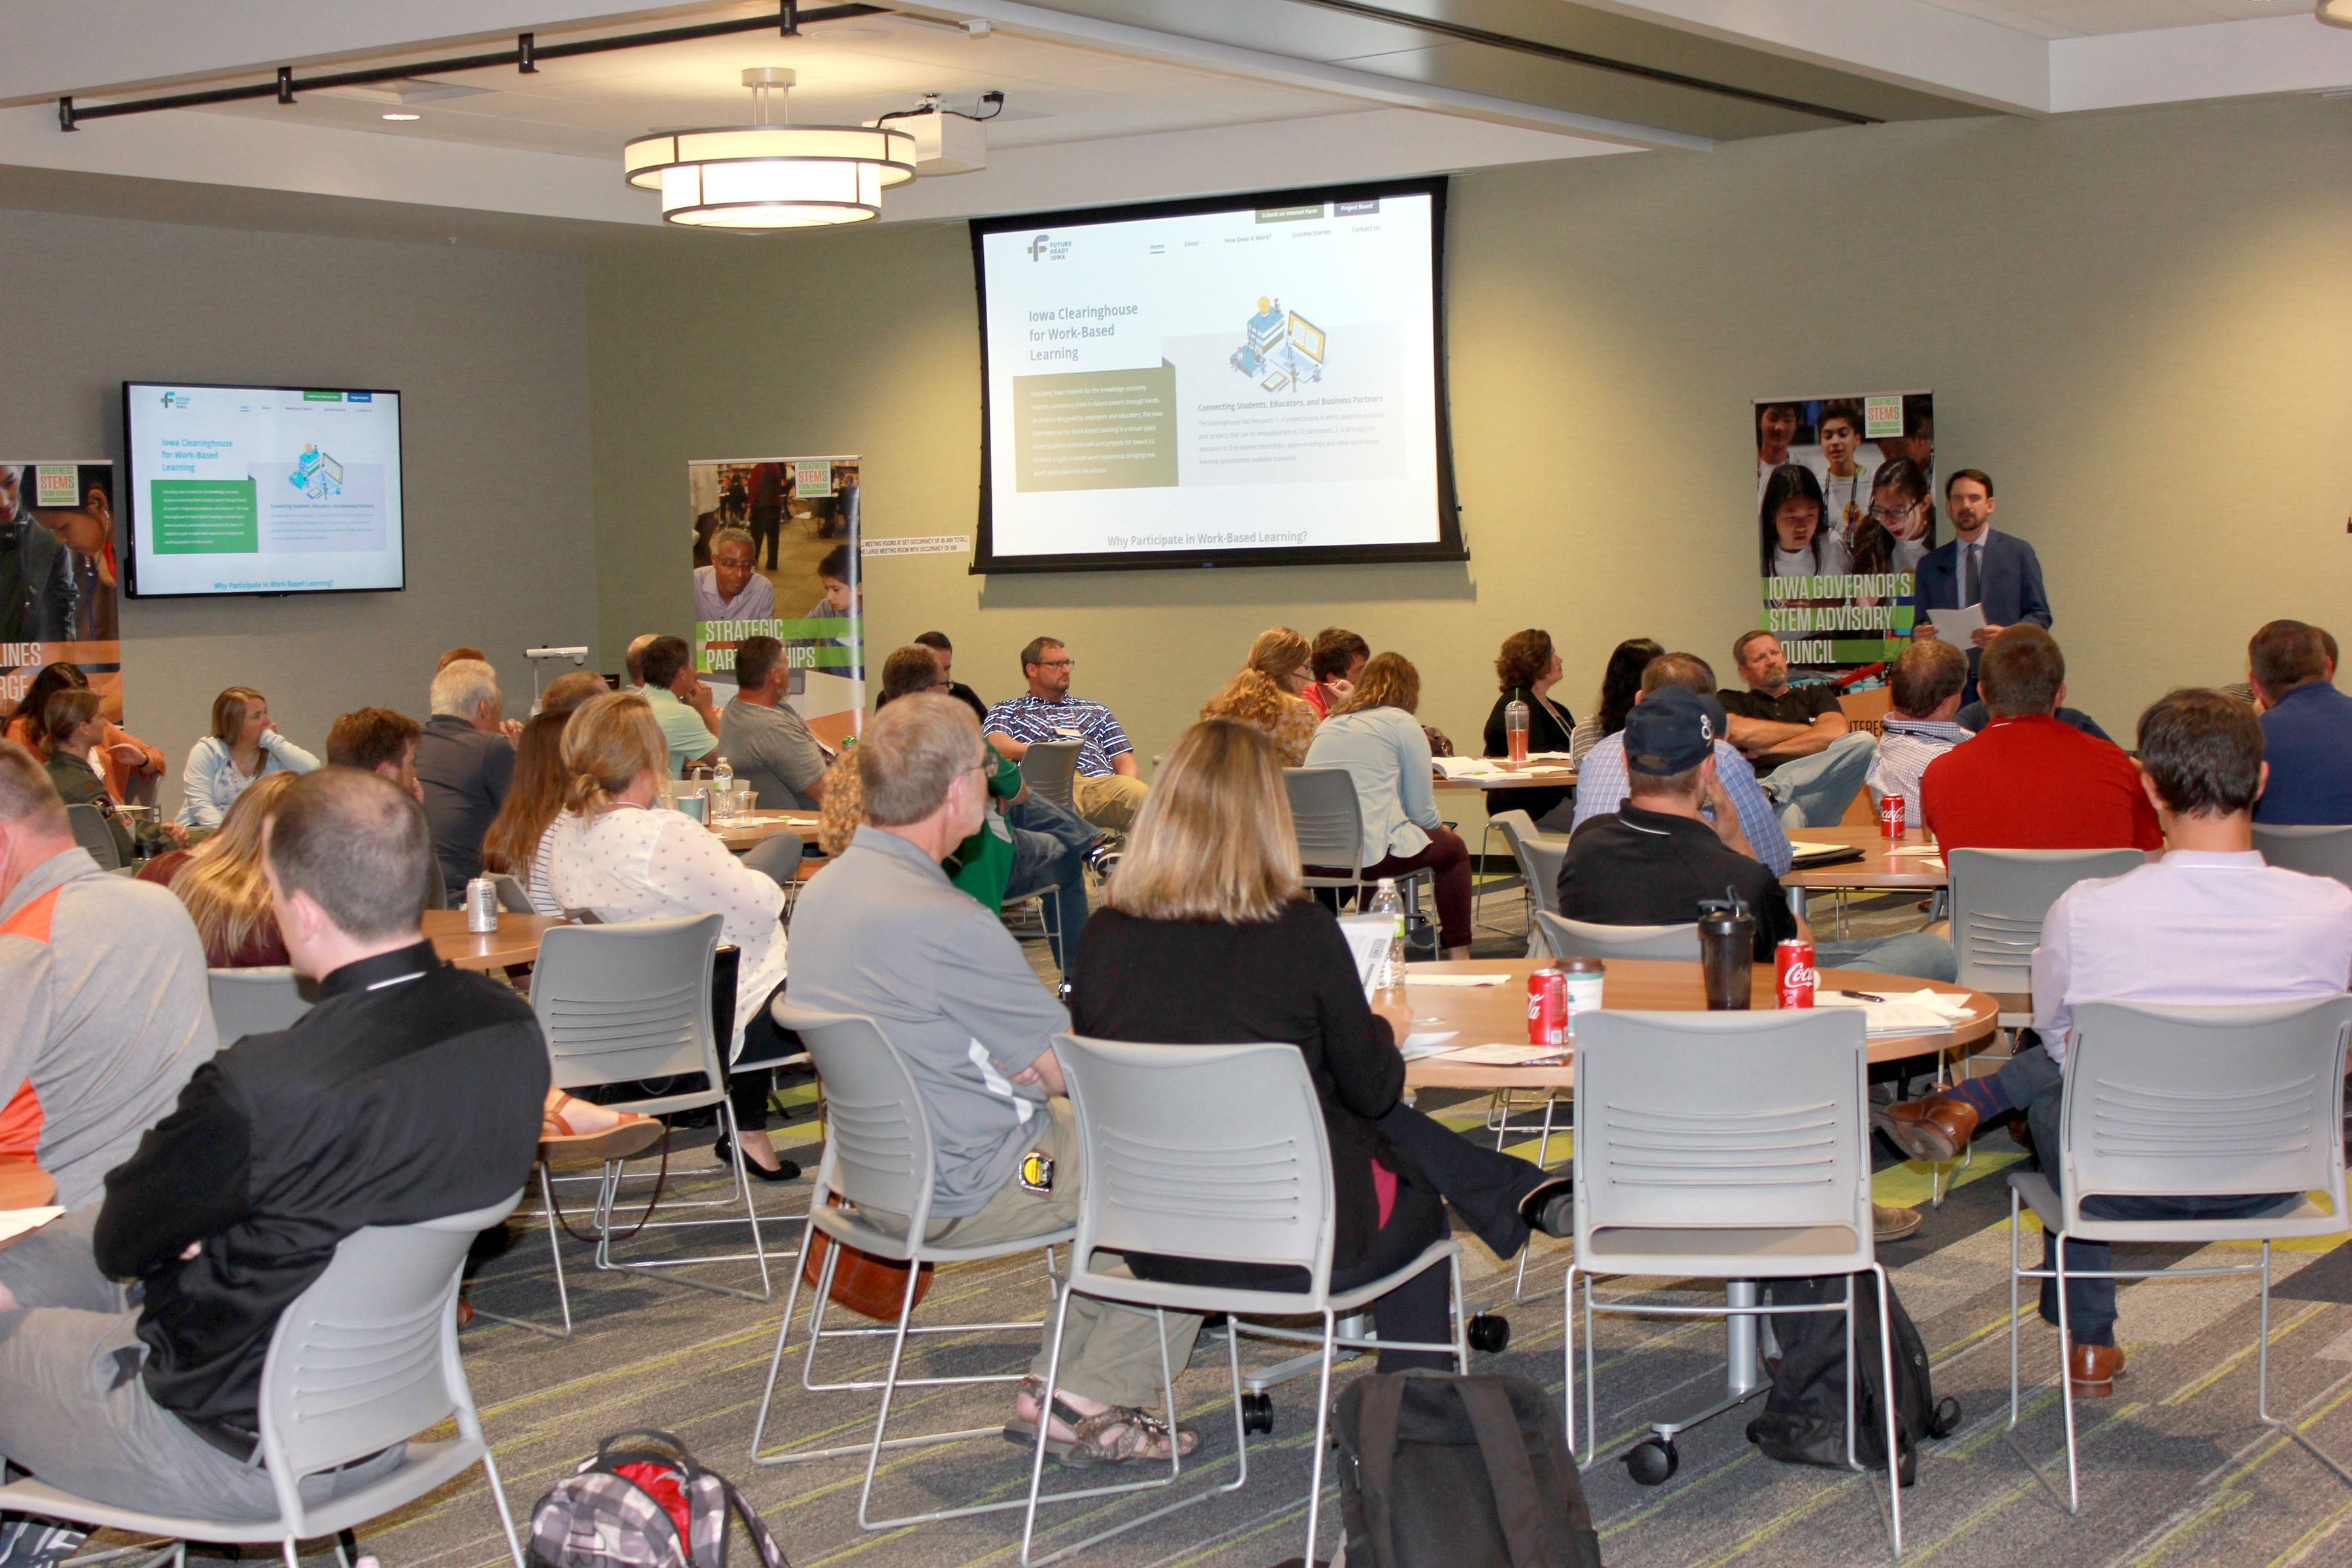 Dr. Ryan Wise, Director of the Iowa Department of Education, was the keynote speaker at the 2019 STEM Teacher Externship Forum.